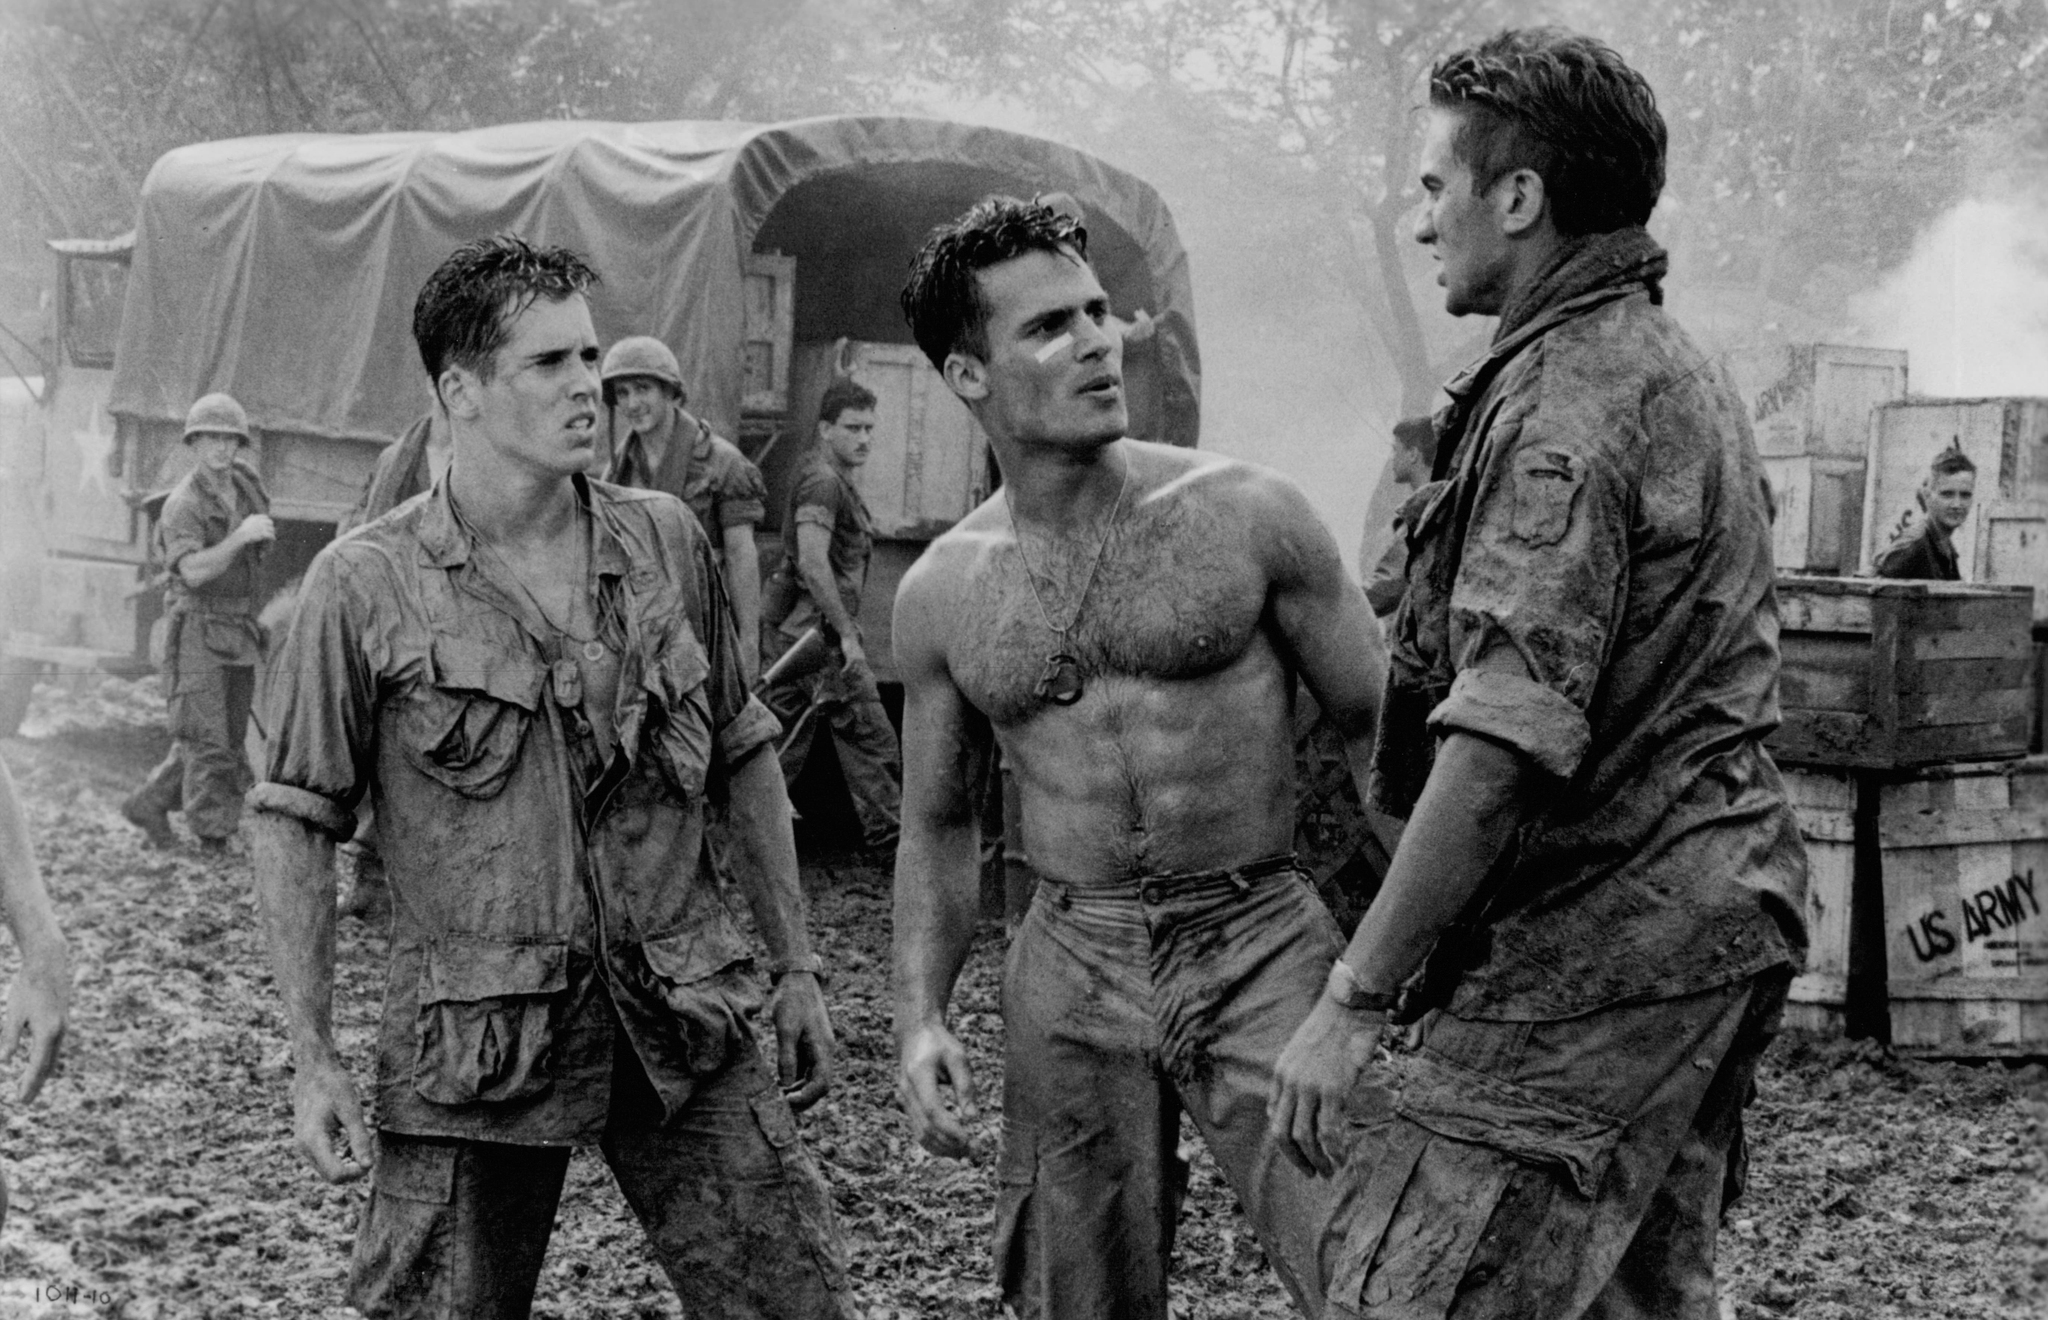 Anthony Barrile, Michael A. Nickles, and Tim Quill in Hamburger Hill (1987)